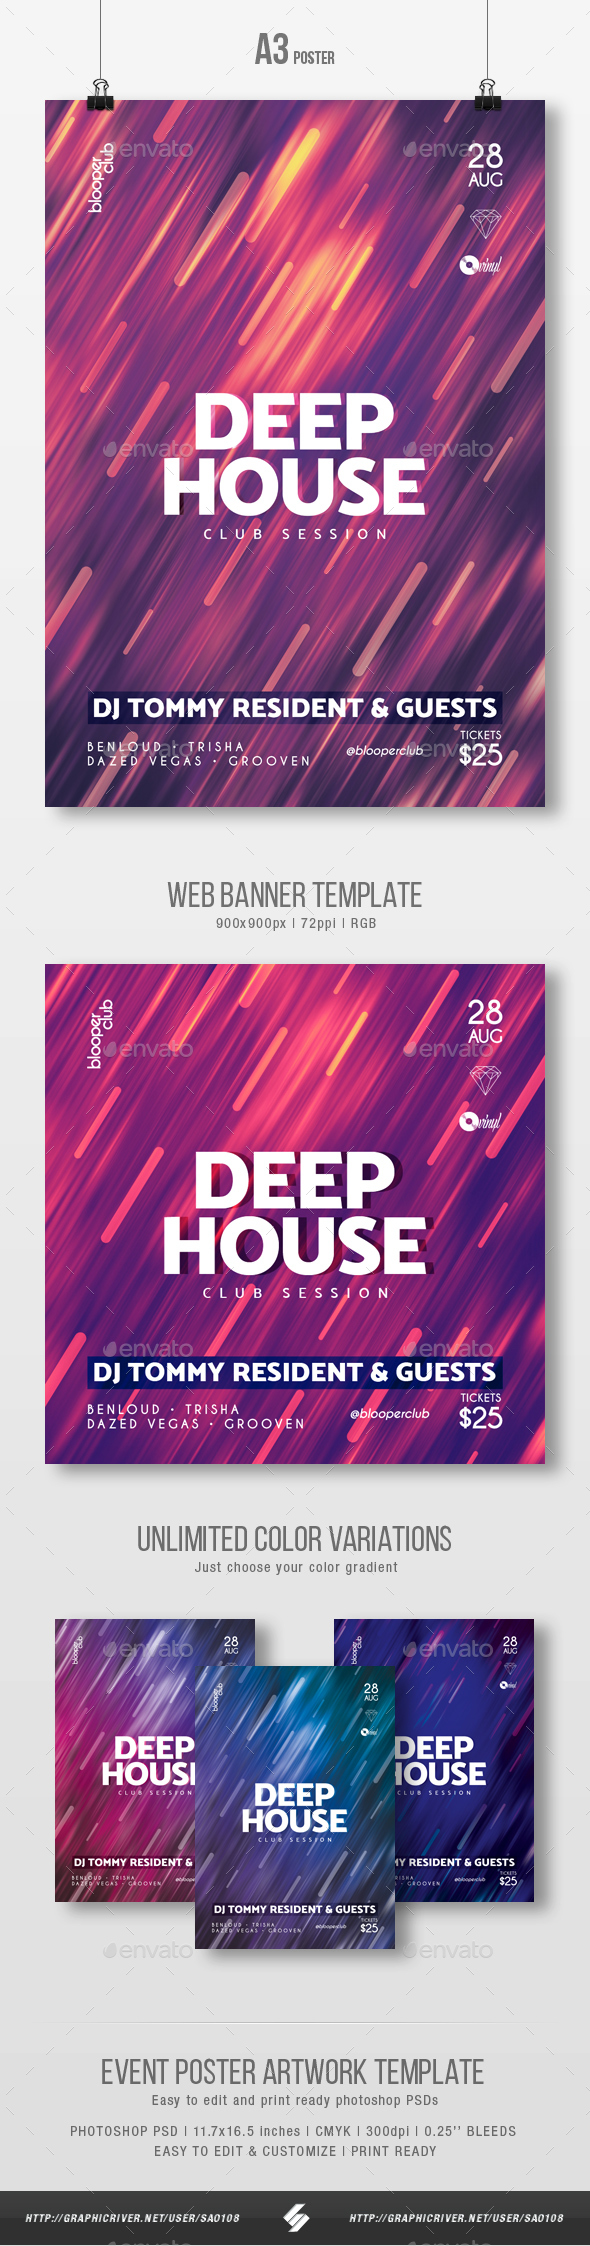 Deep House Session 3 - Party Flyer / Poster Template A3 - Clubs & Parties Events